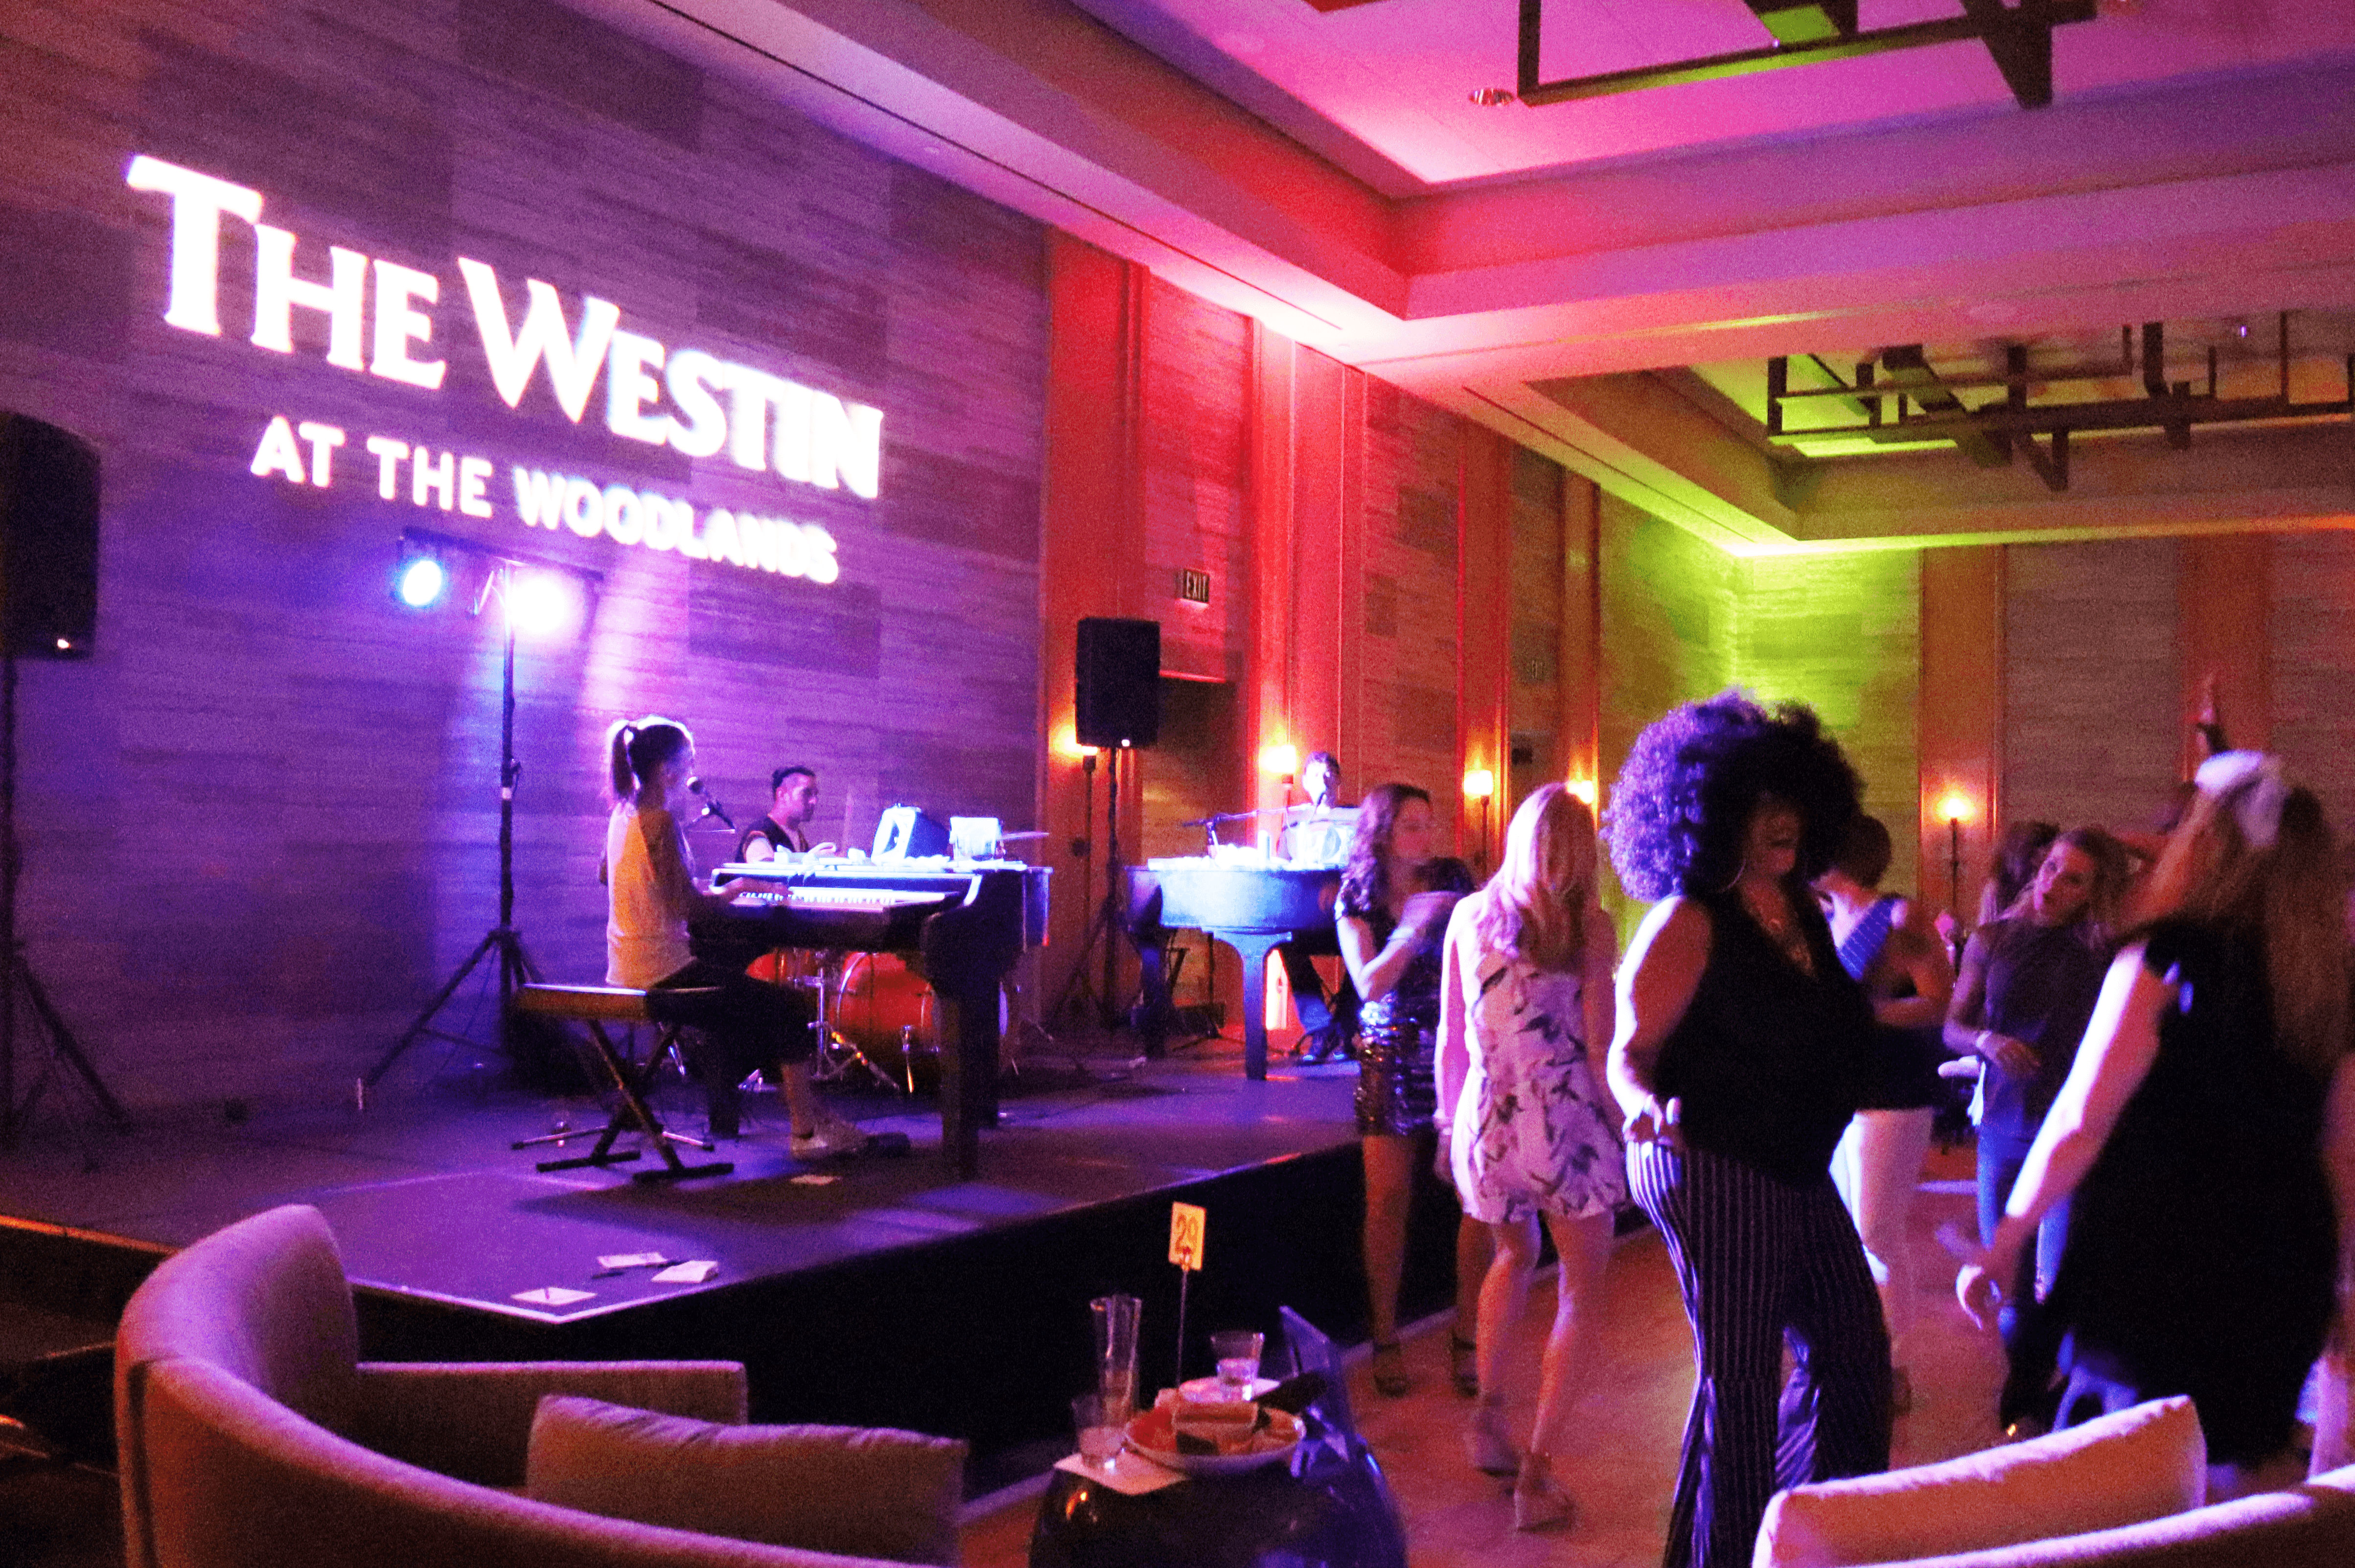 The Westin - Howl2Go Dueling Pianos